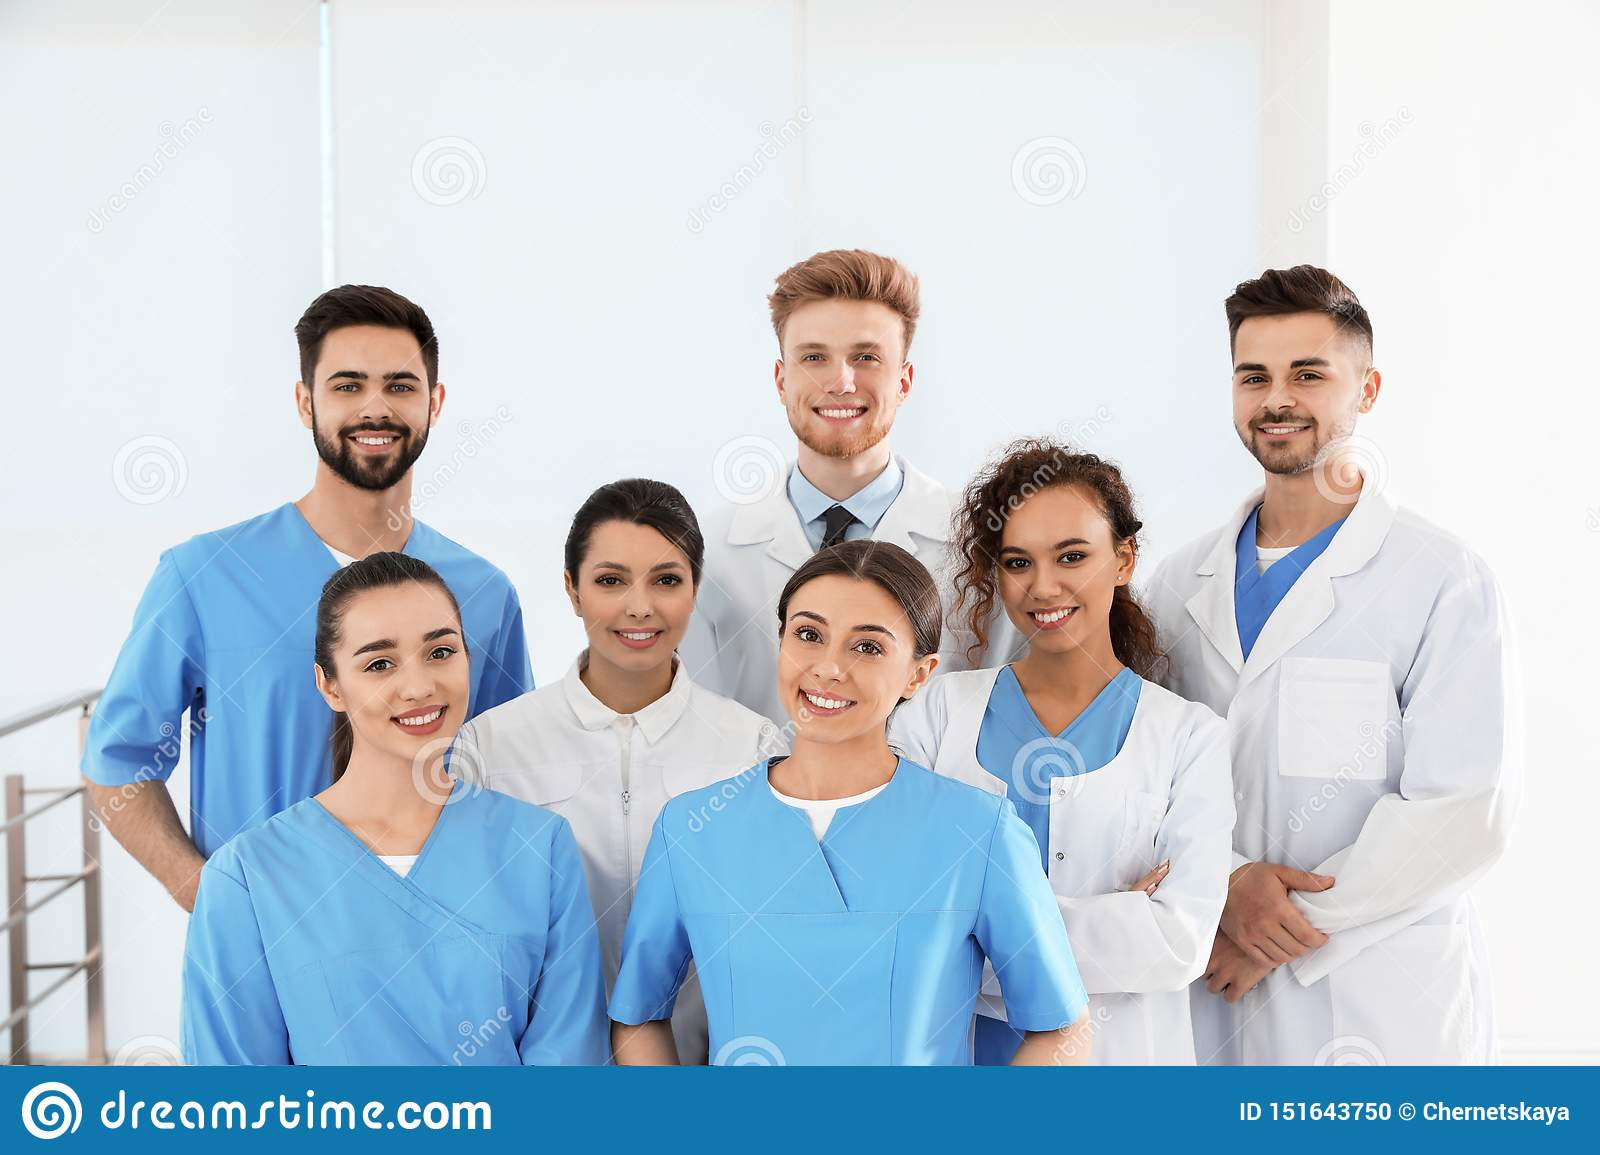 Team of medical workers in hospital